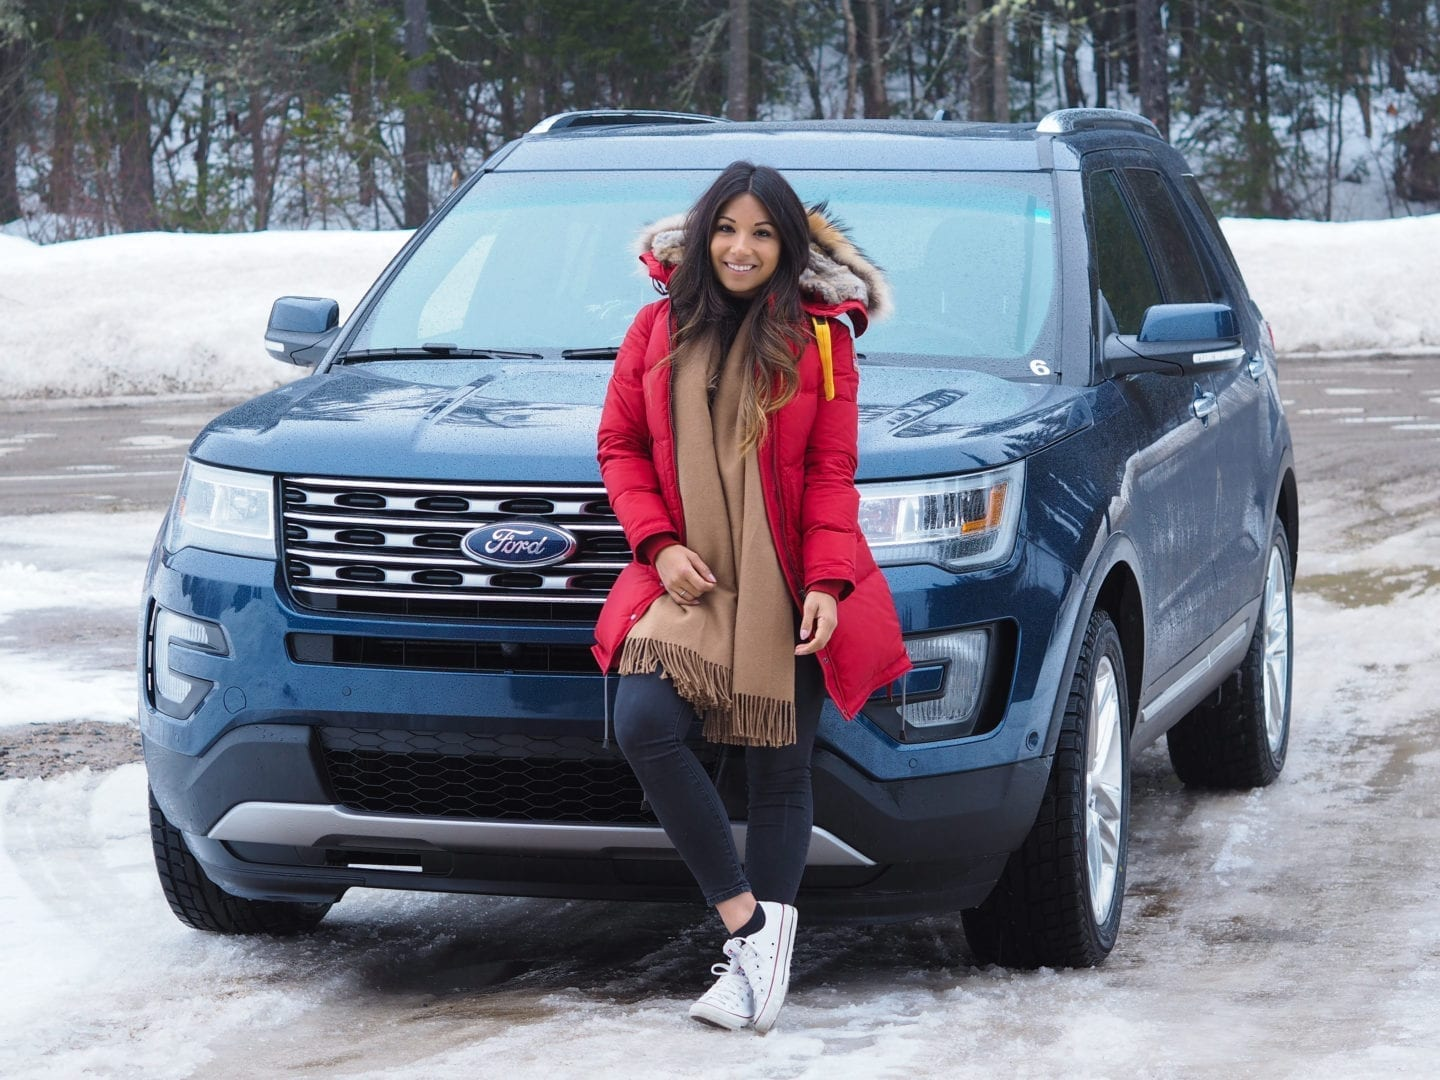 Quebec winter adventure with ford